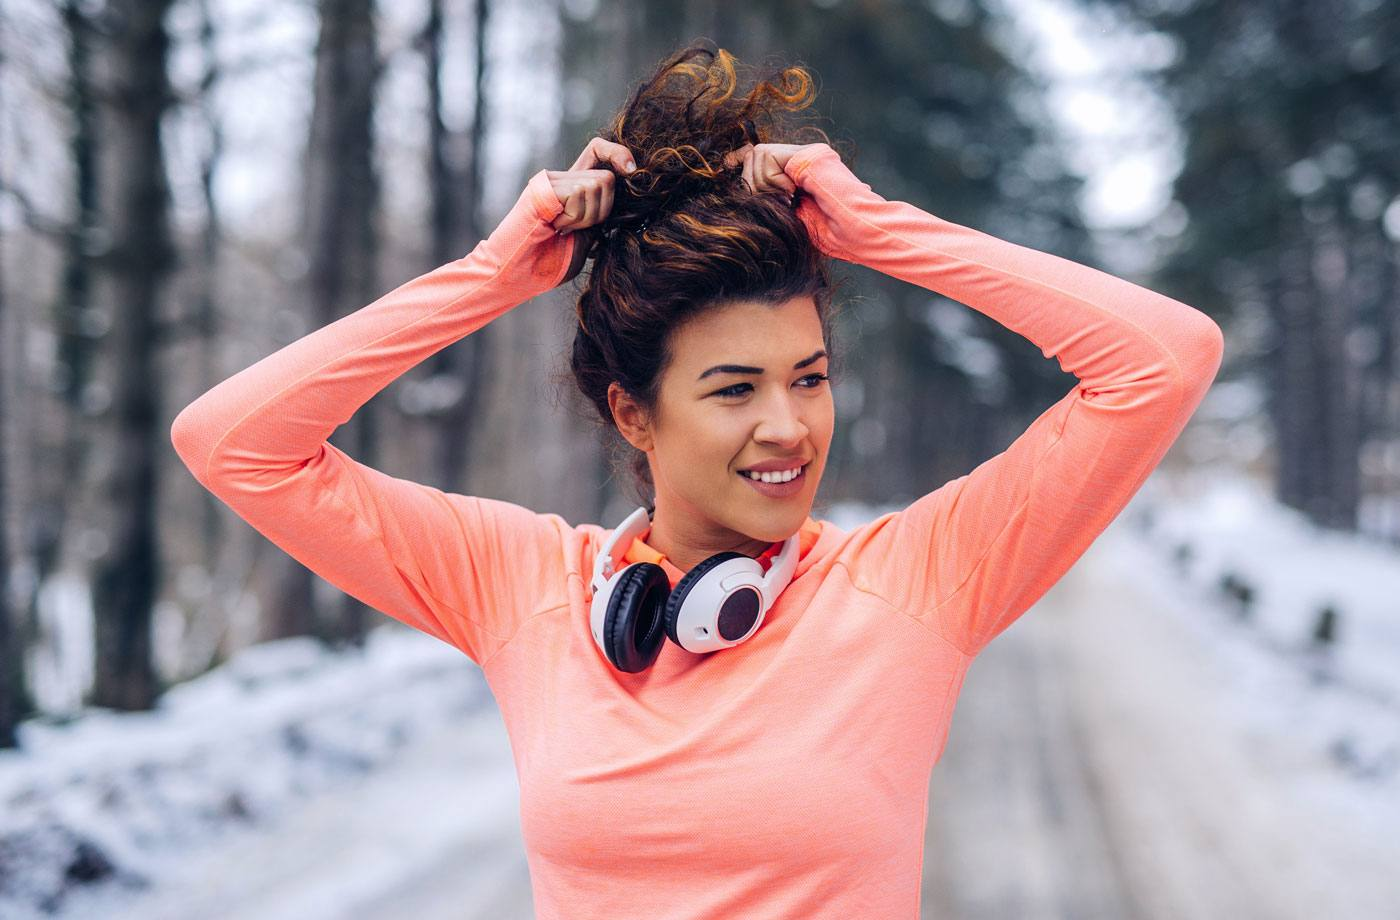 Thumbnail for No pony, no problem: Hit the gym with these cute workout hairstyles for short hair